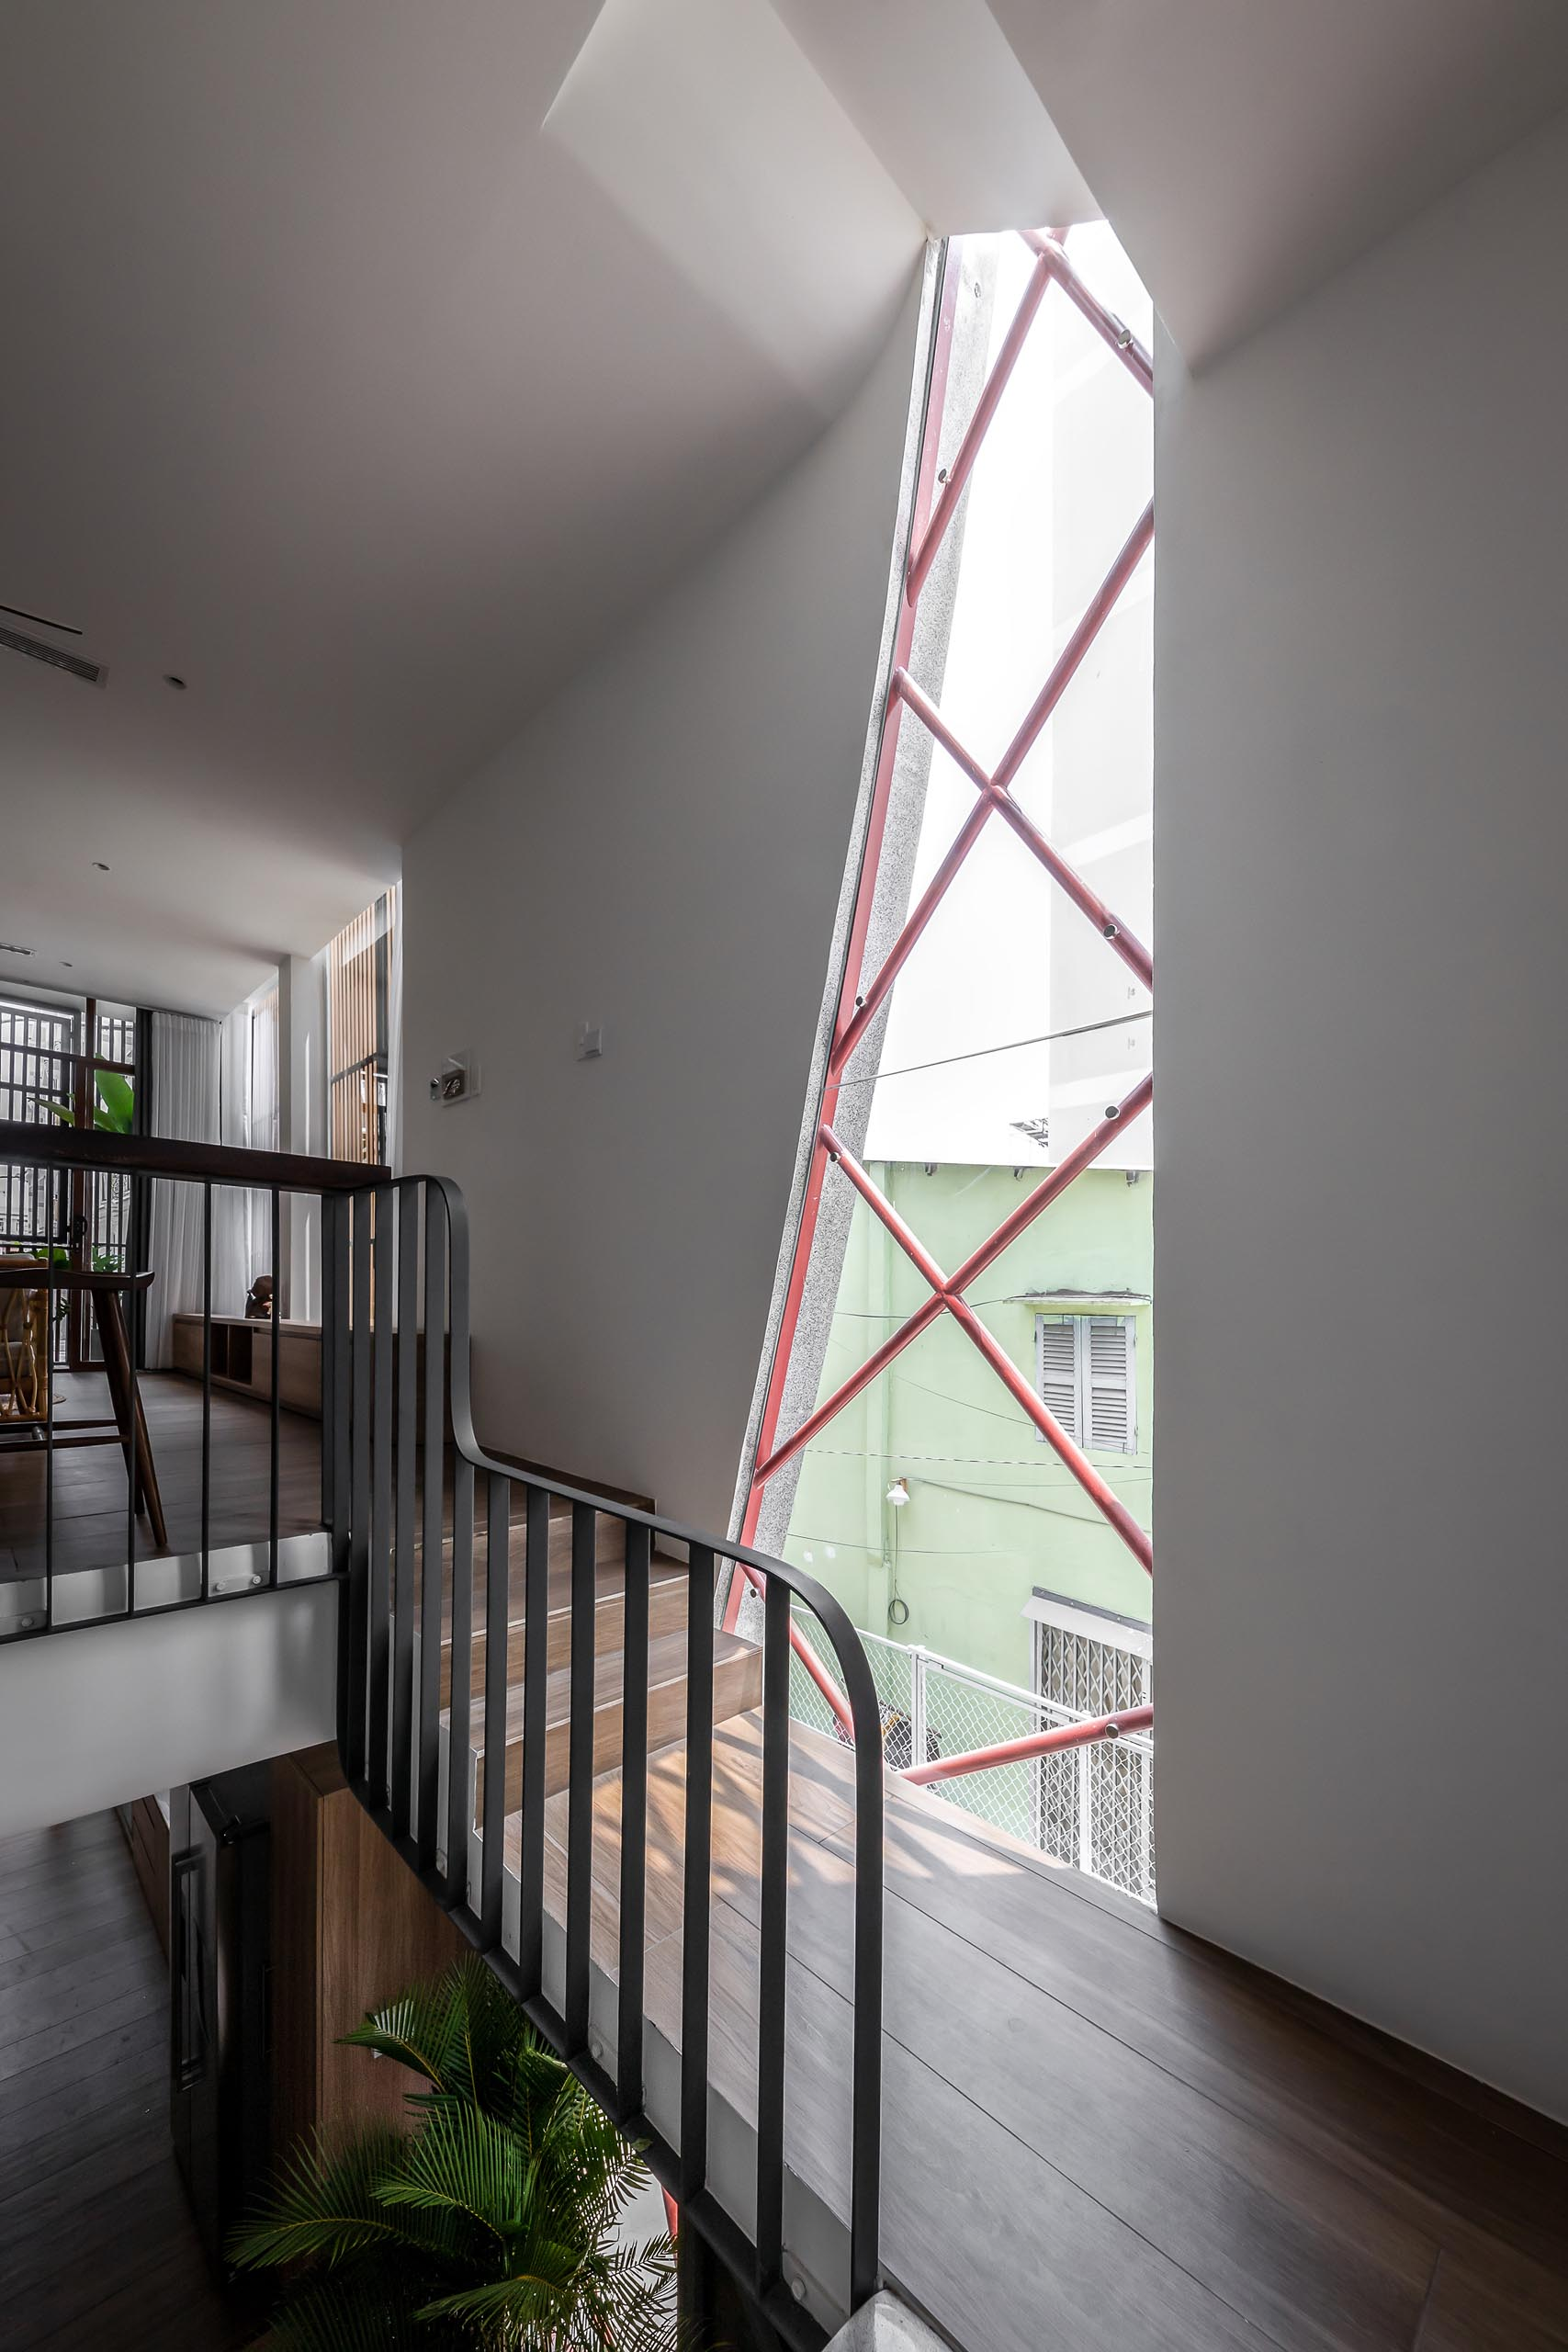 An irregular shaped window fills the entryway and staircase with natural light.